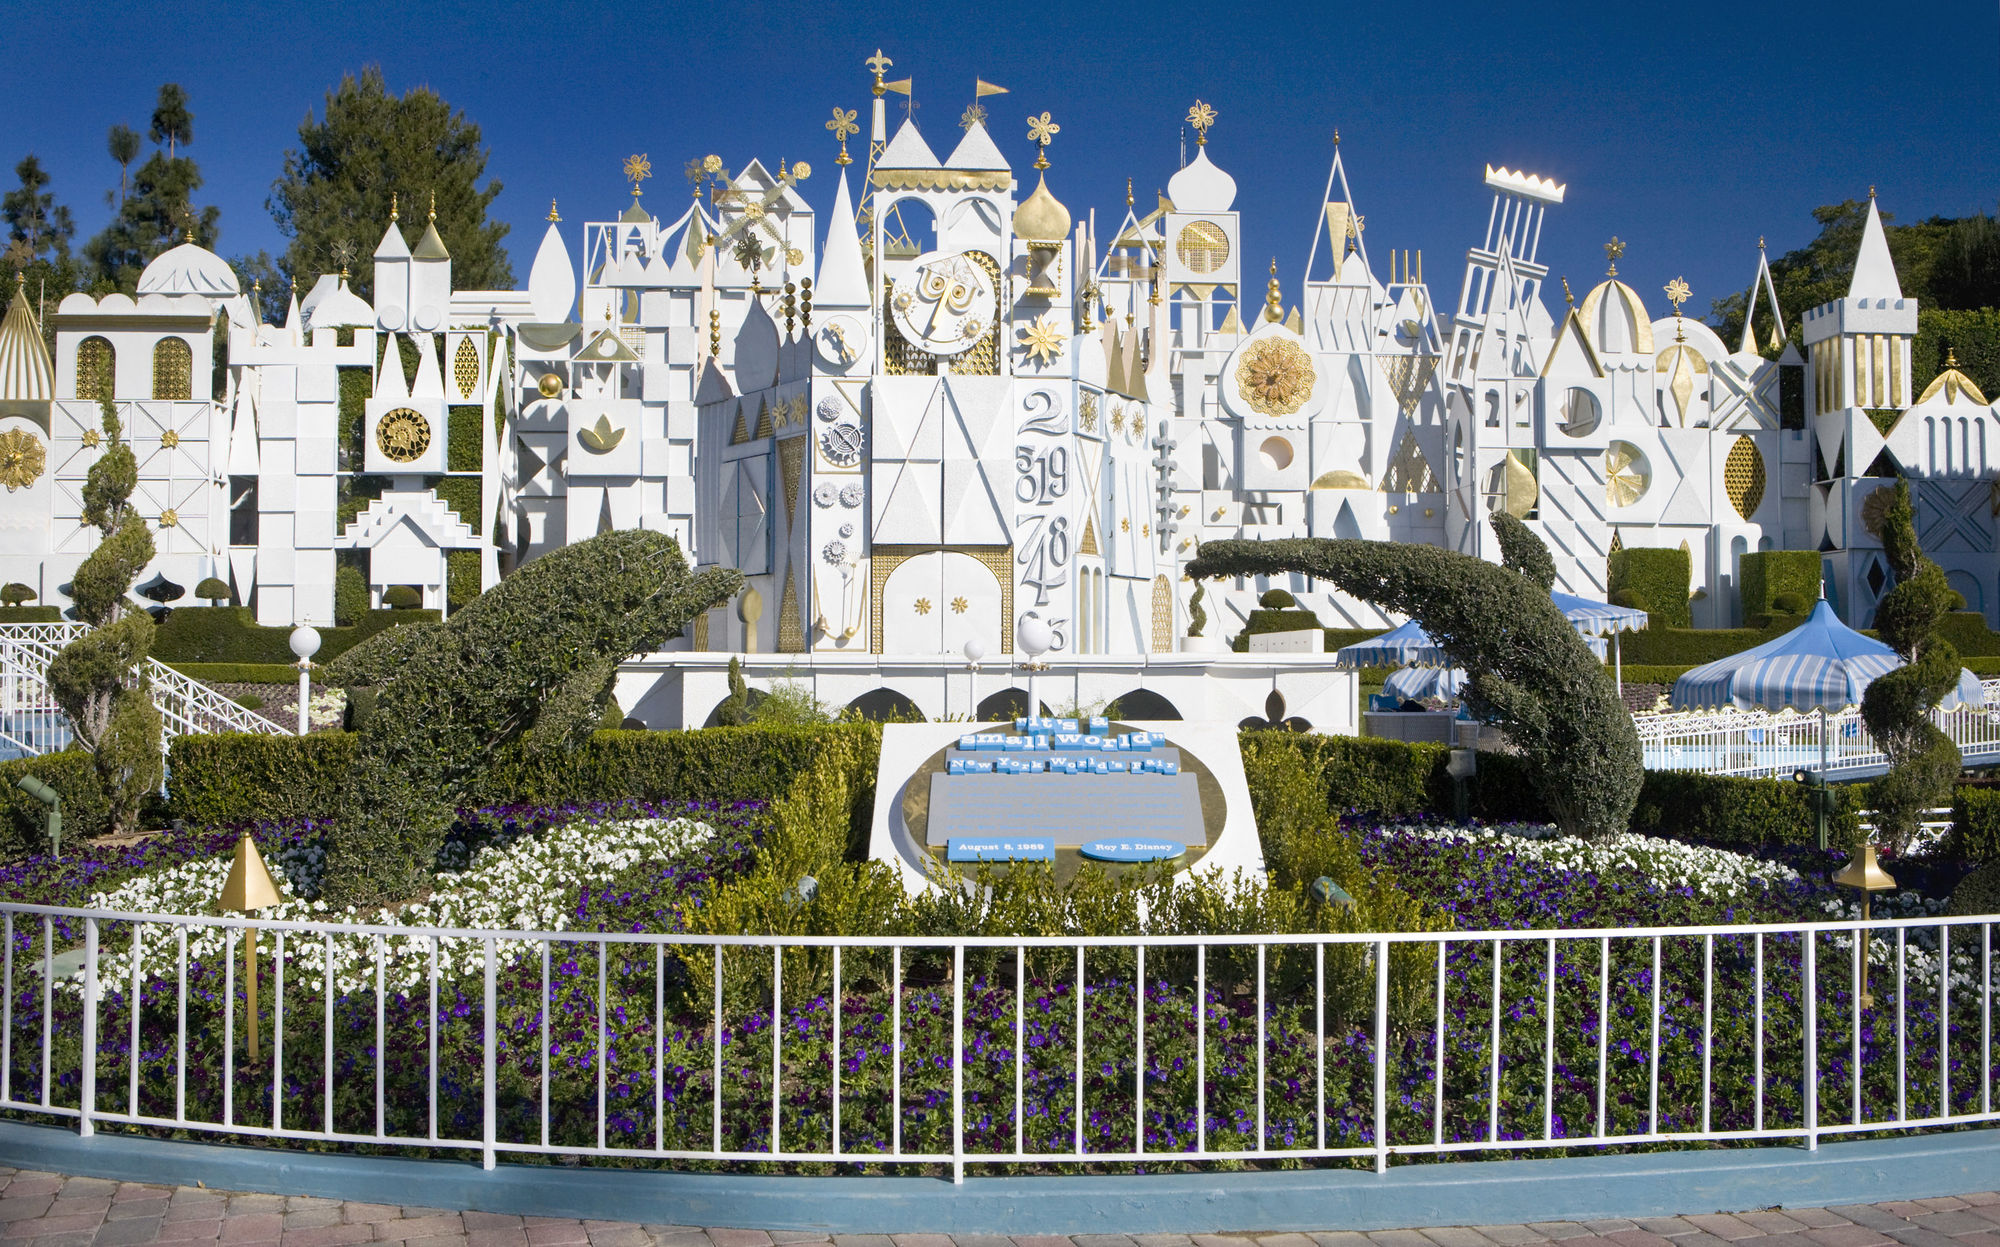 Coburn's masterpieces bring life and are an integral aspect of the ride It's A Small World at Disneyland Resort California.